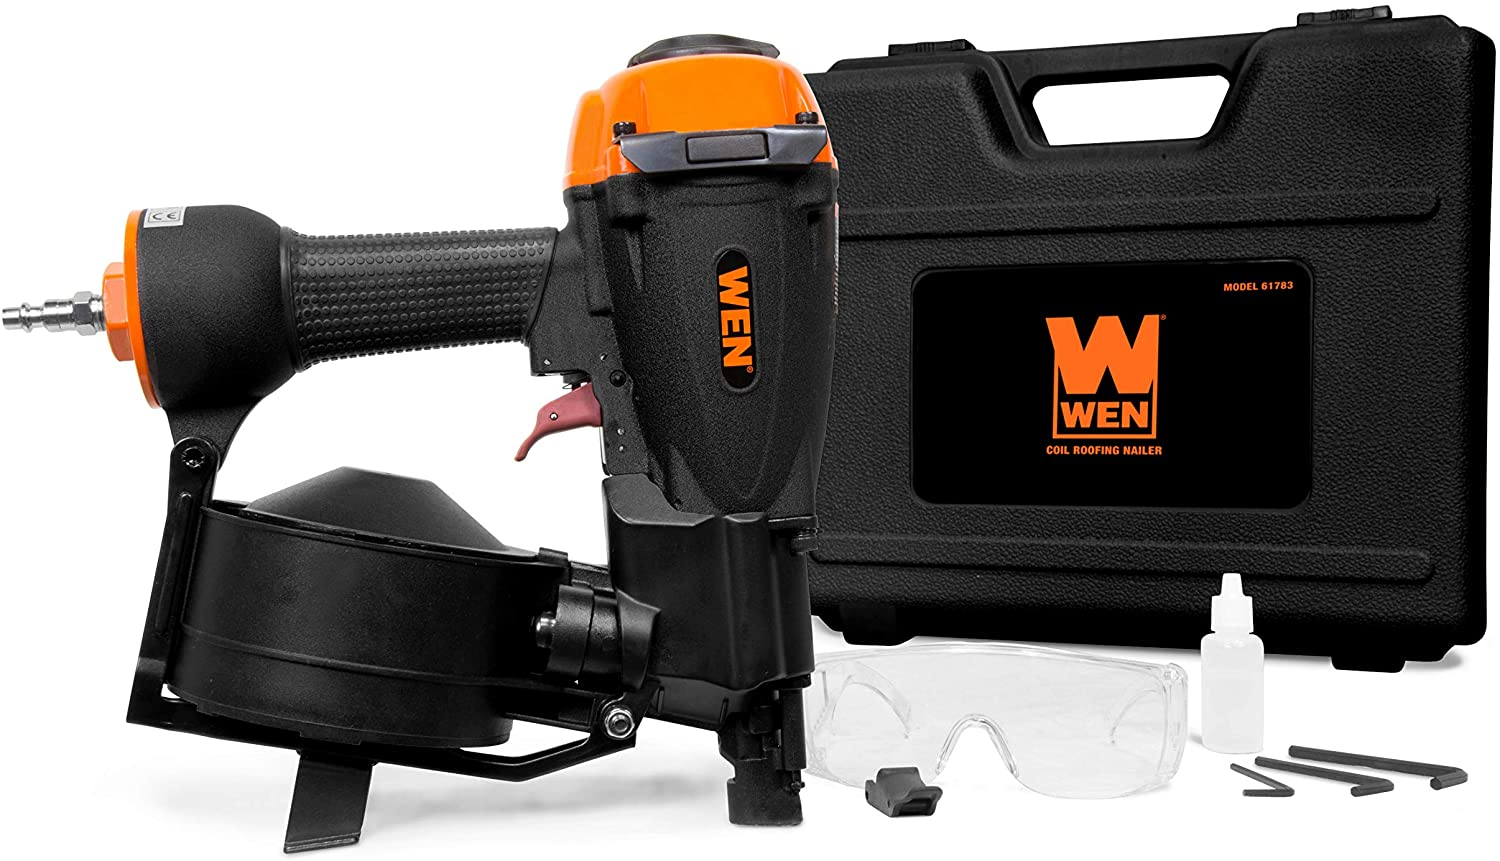 WEN Pneumatic Coil Roofing Nailer